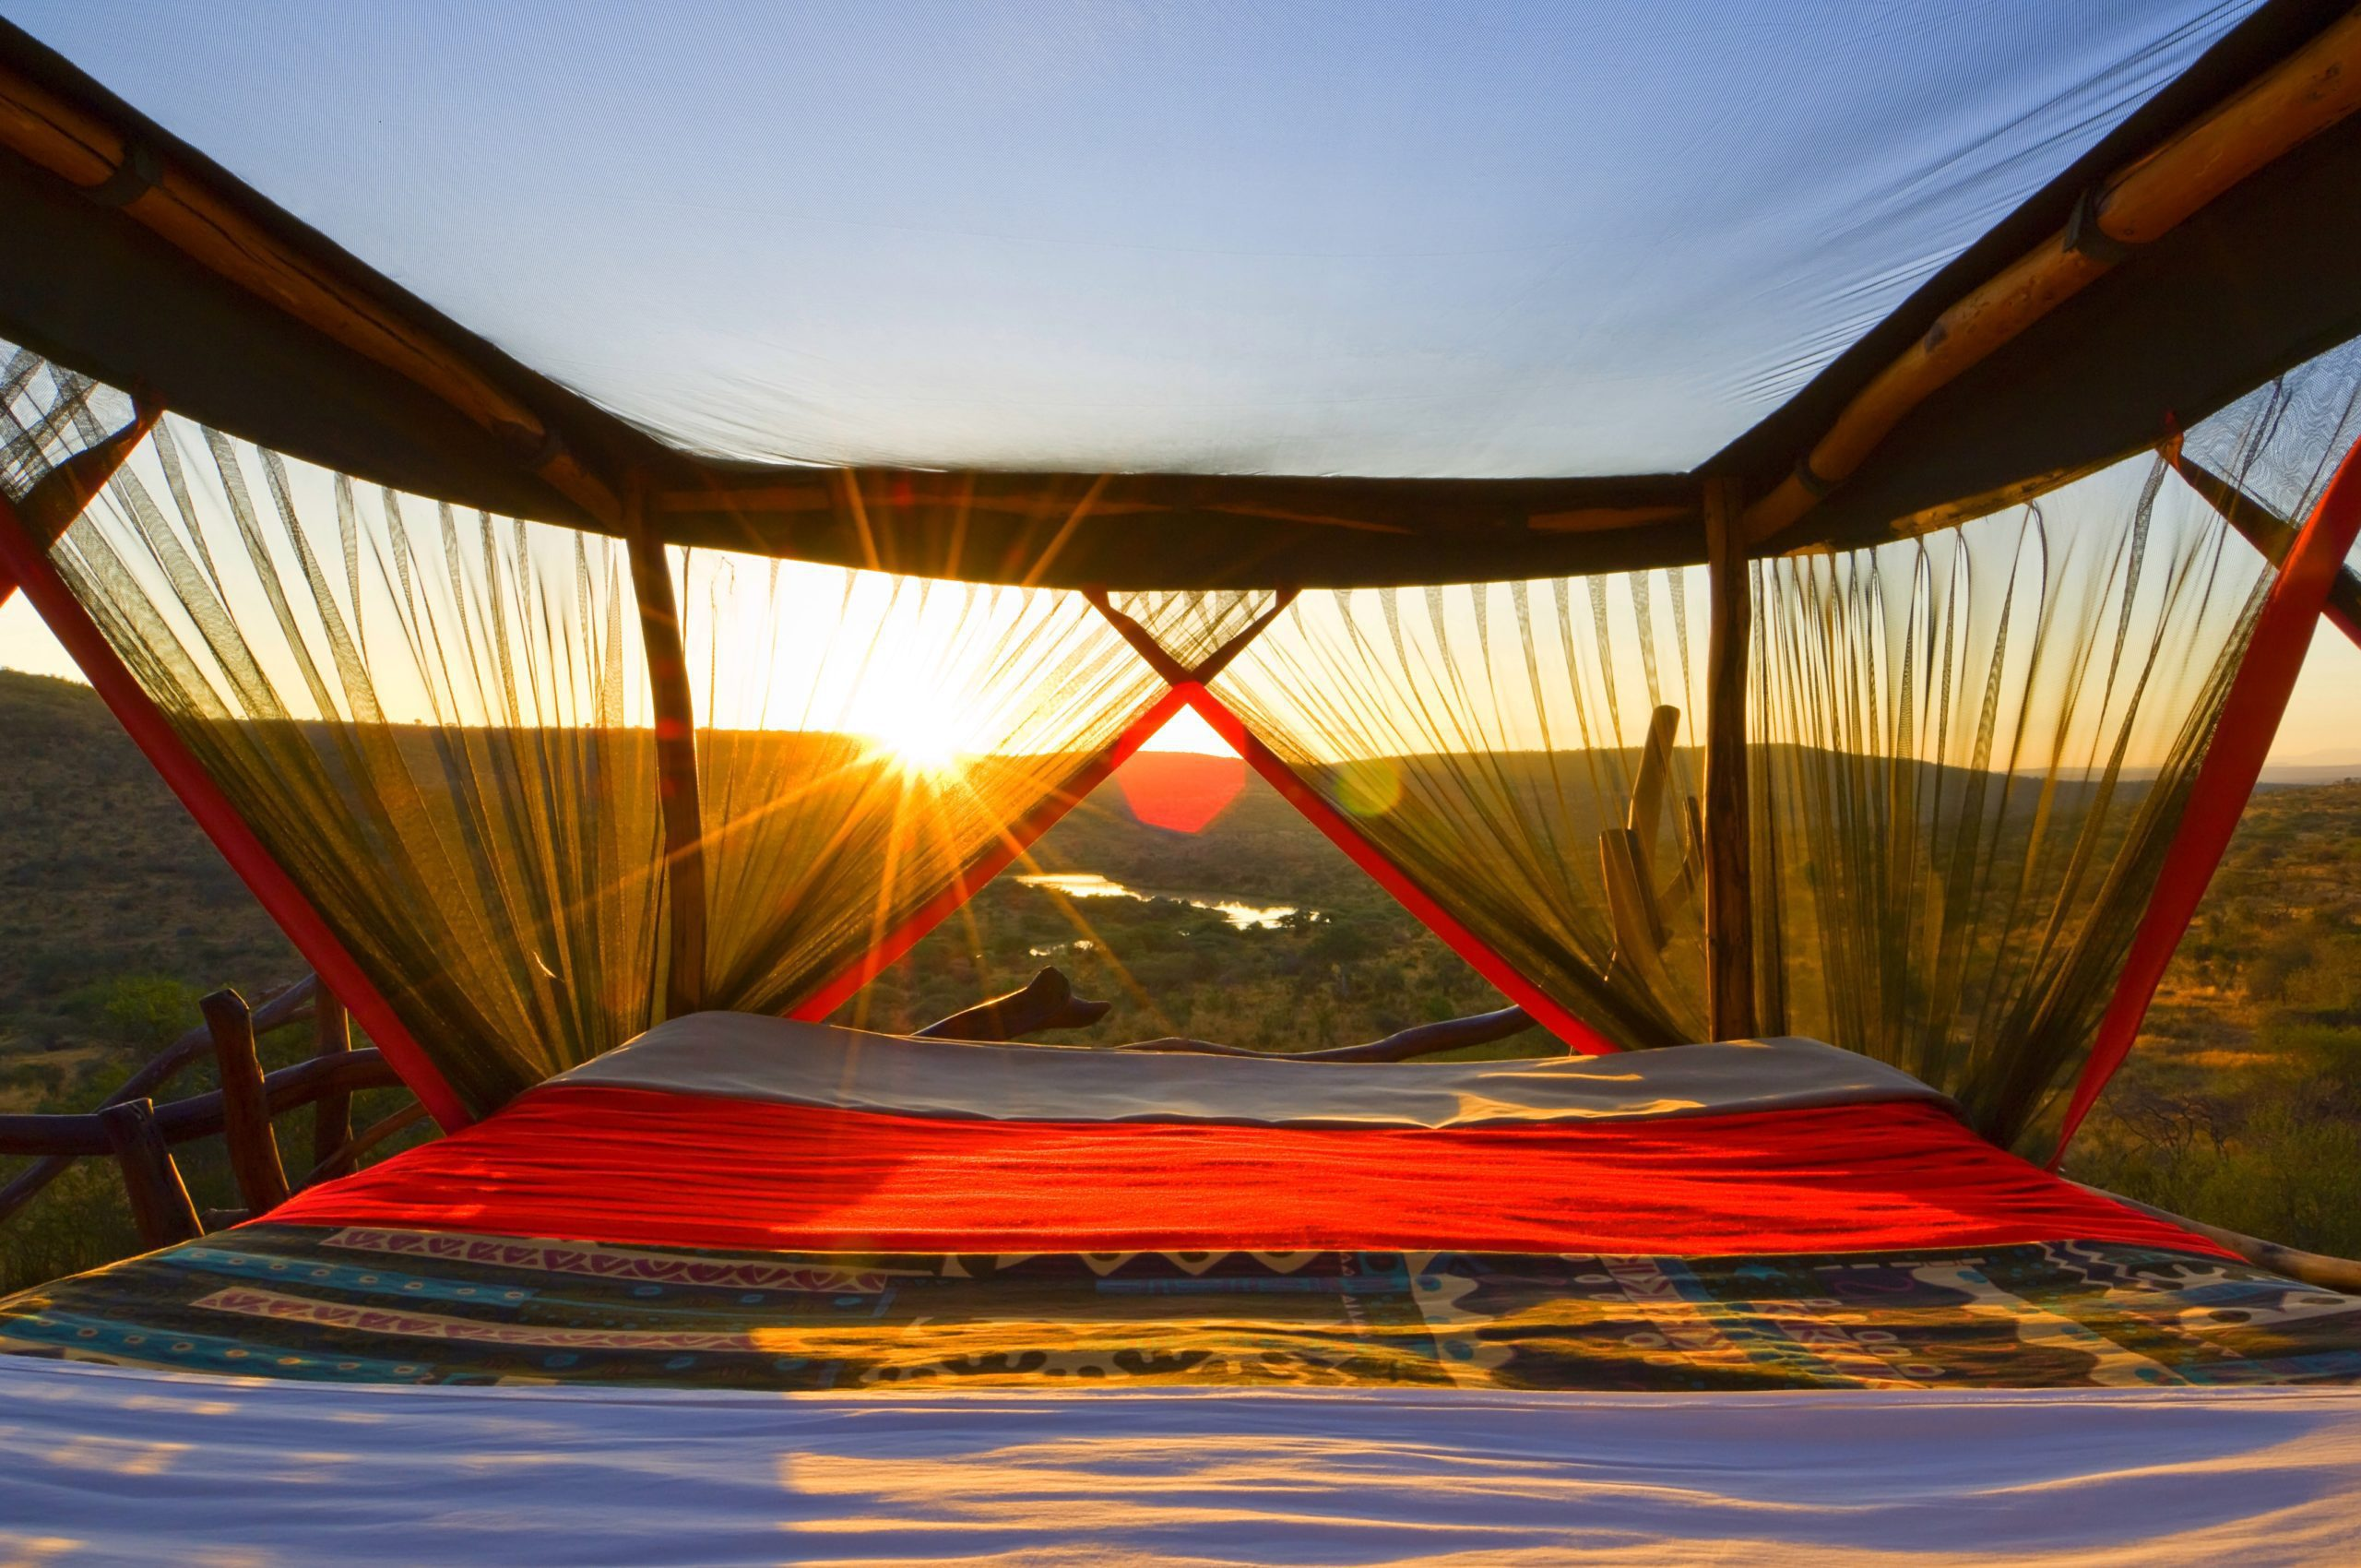 loisaba starbeds view from bed with sun setting on the best kenya safari